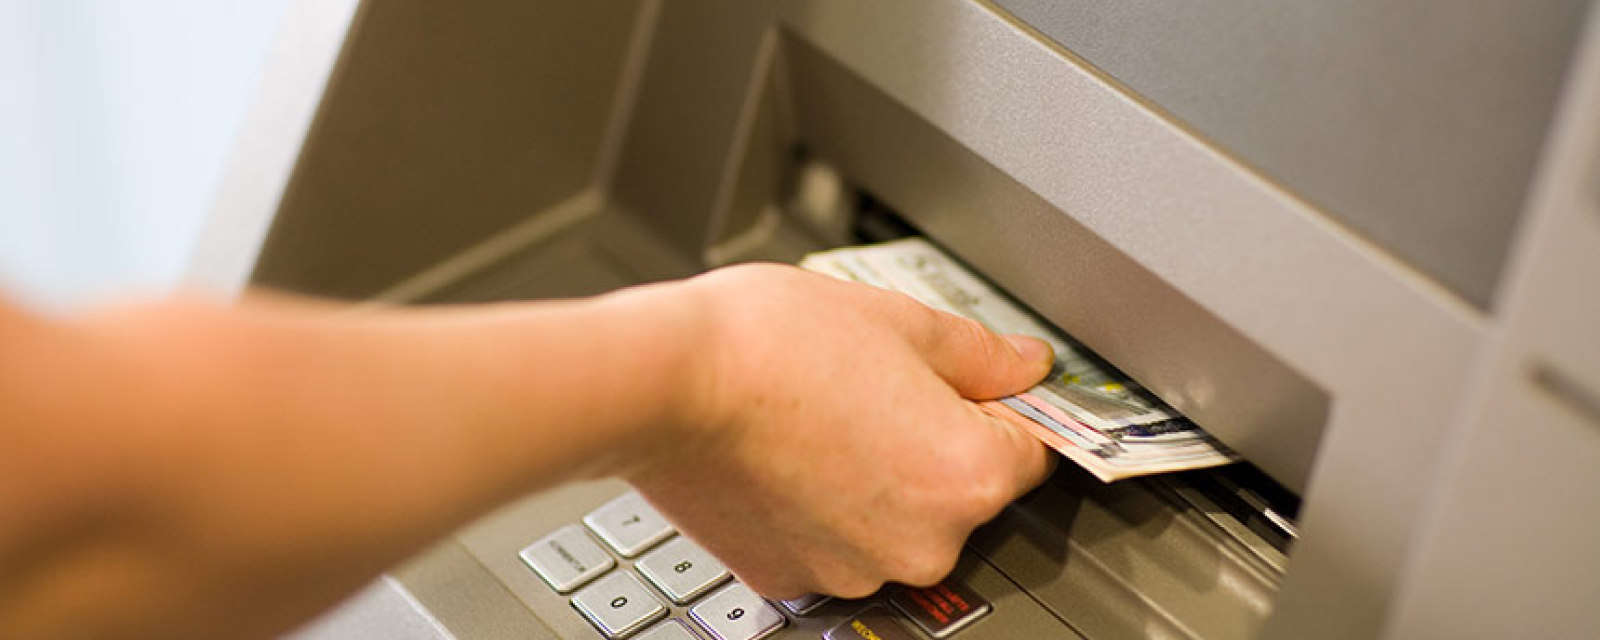 ATM Financial Banks